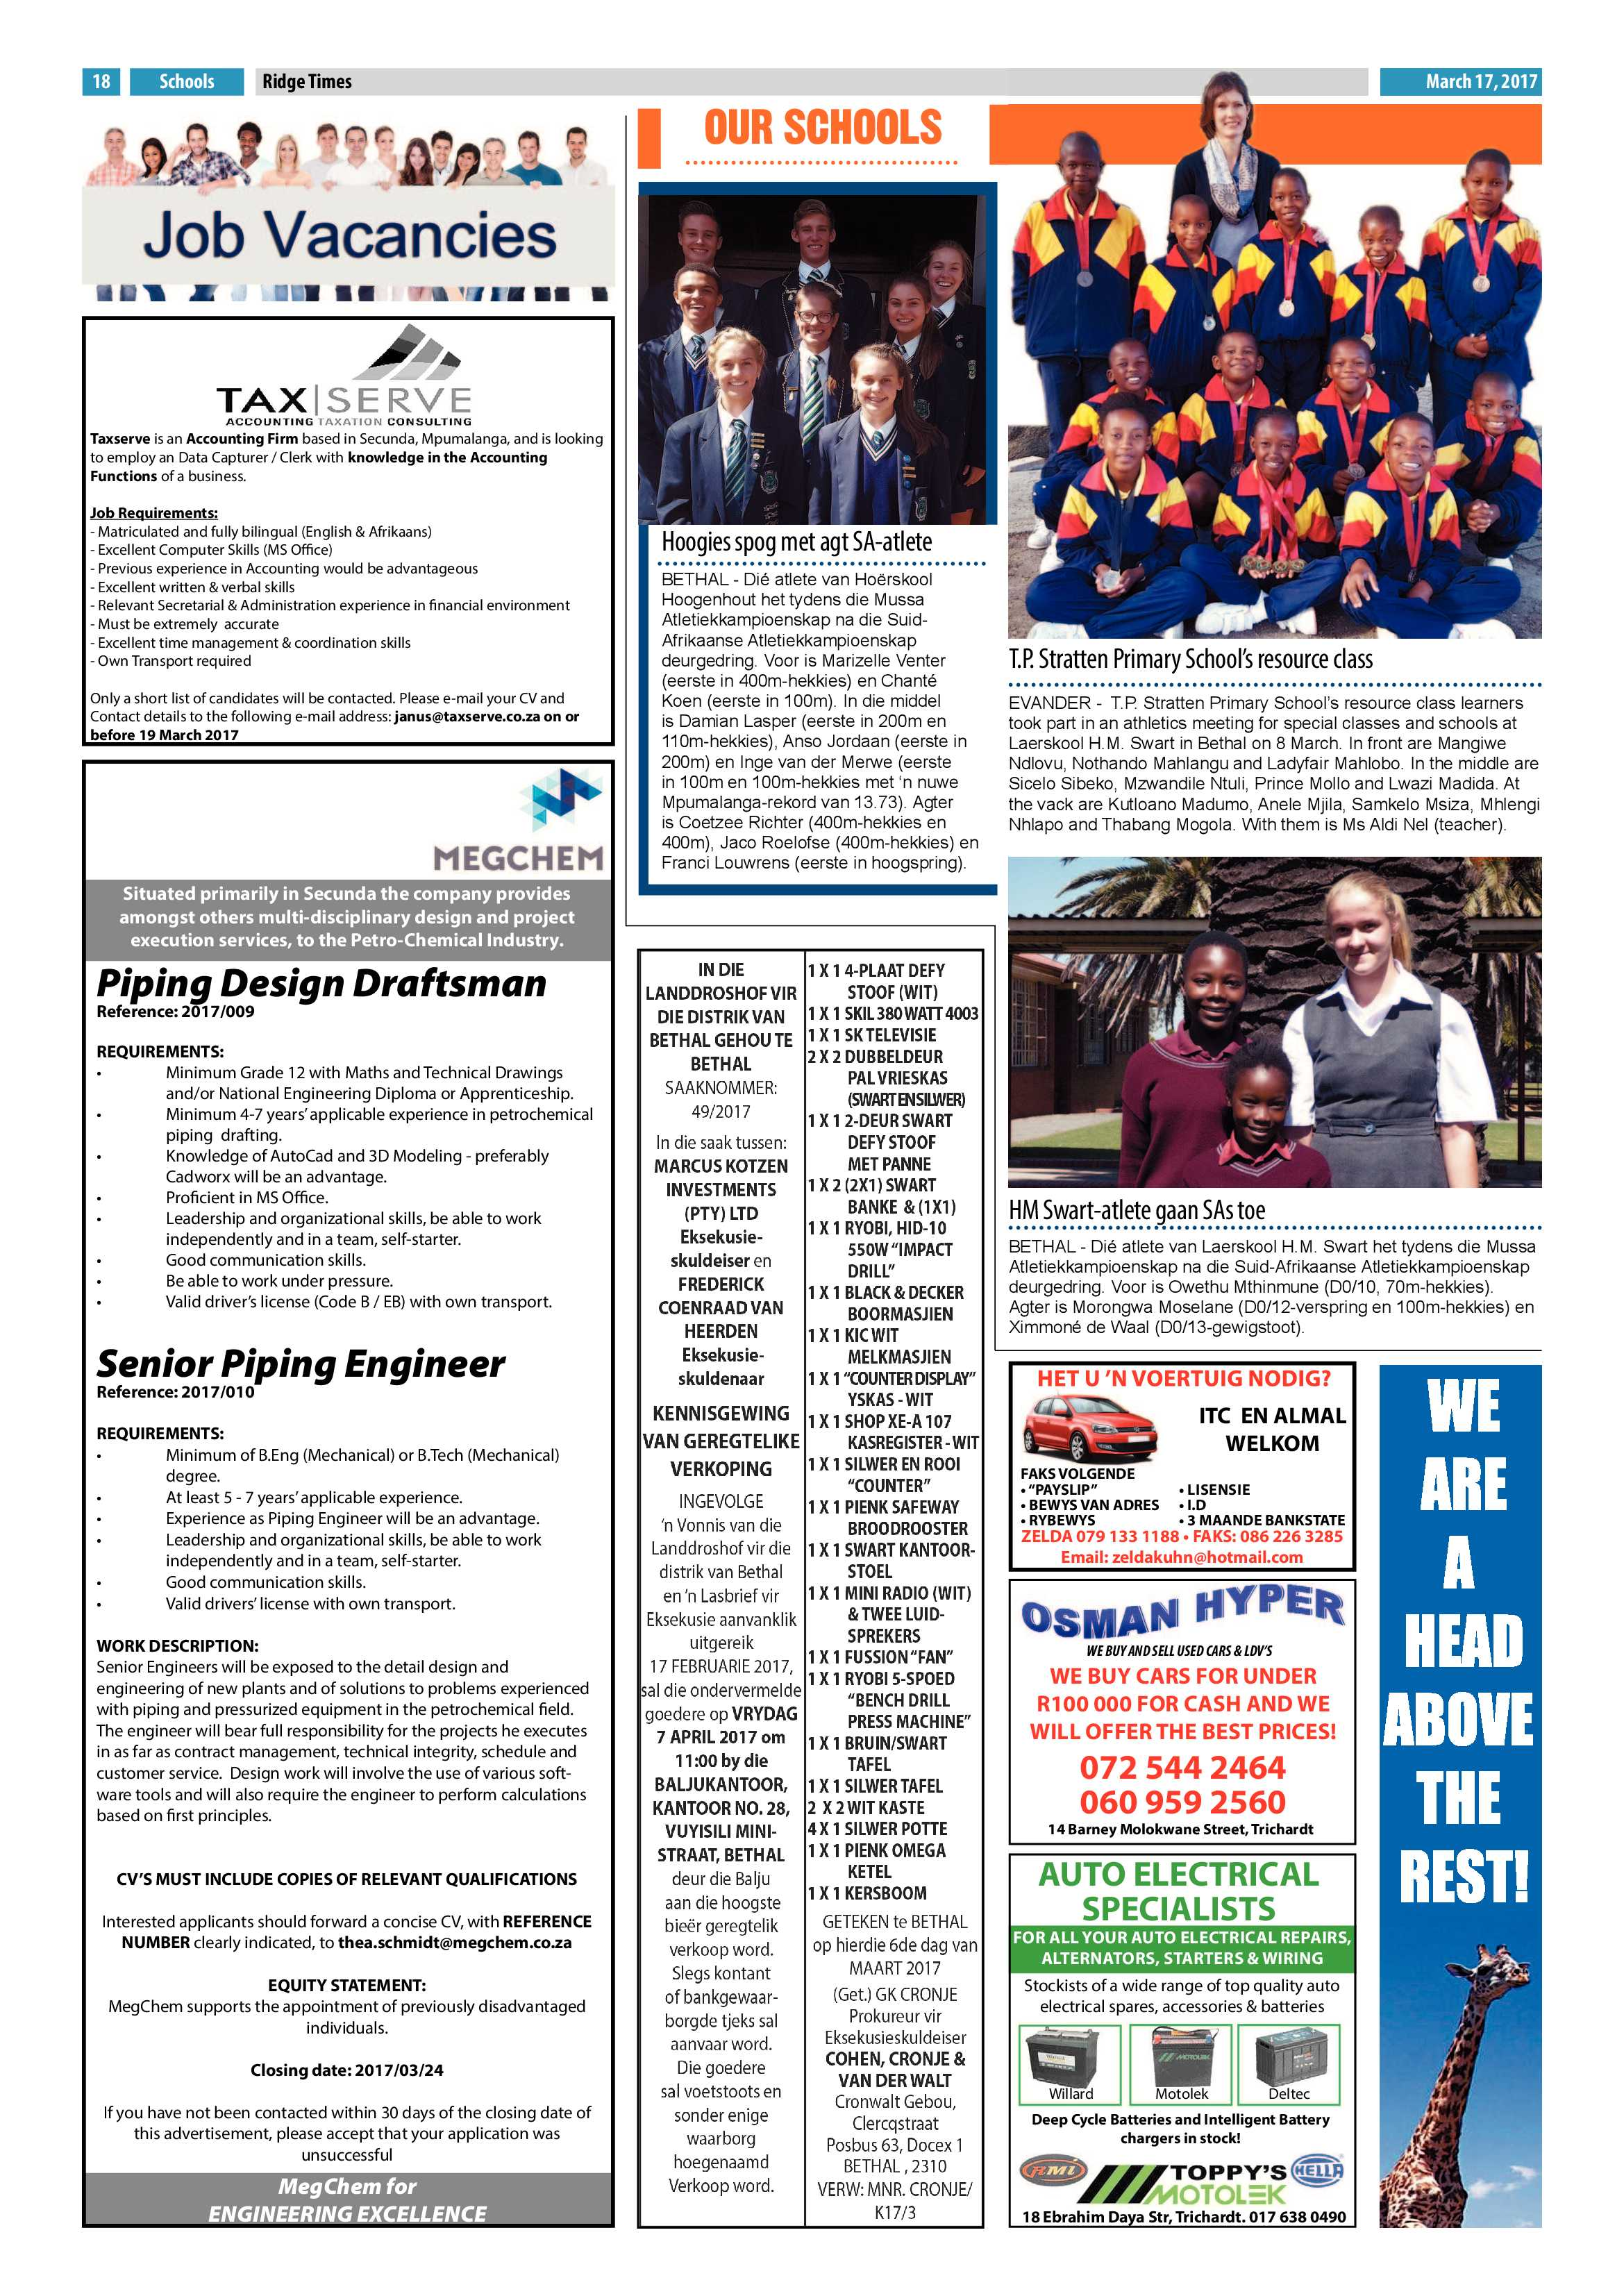 ridge-times-17-march-epapers-page-18